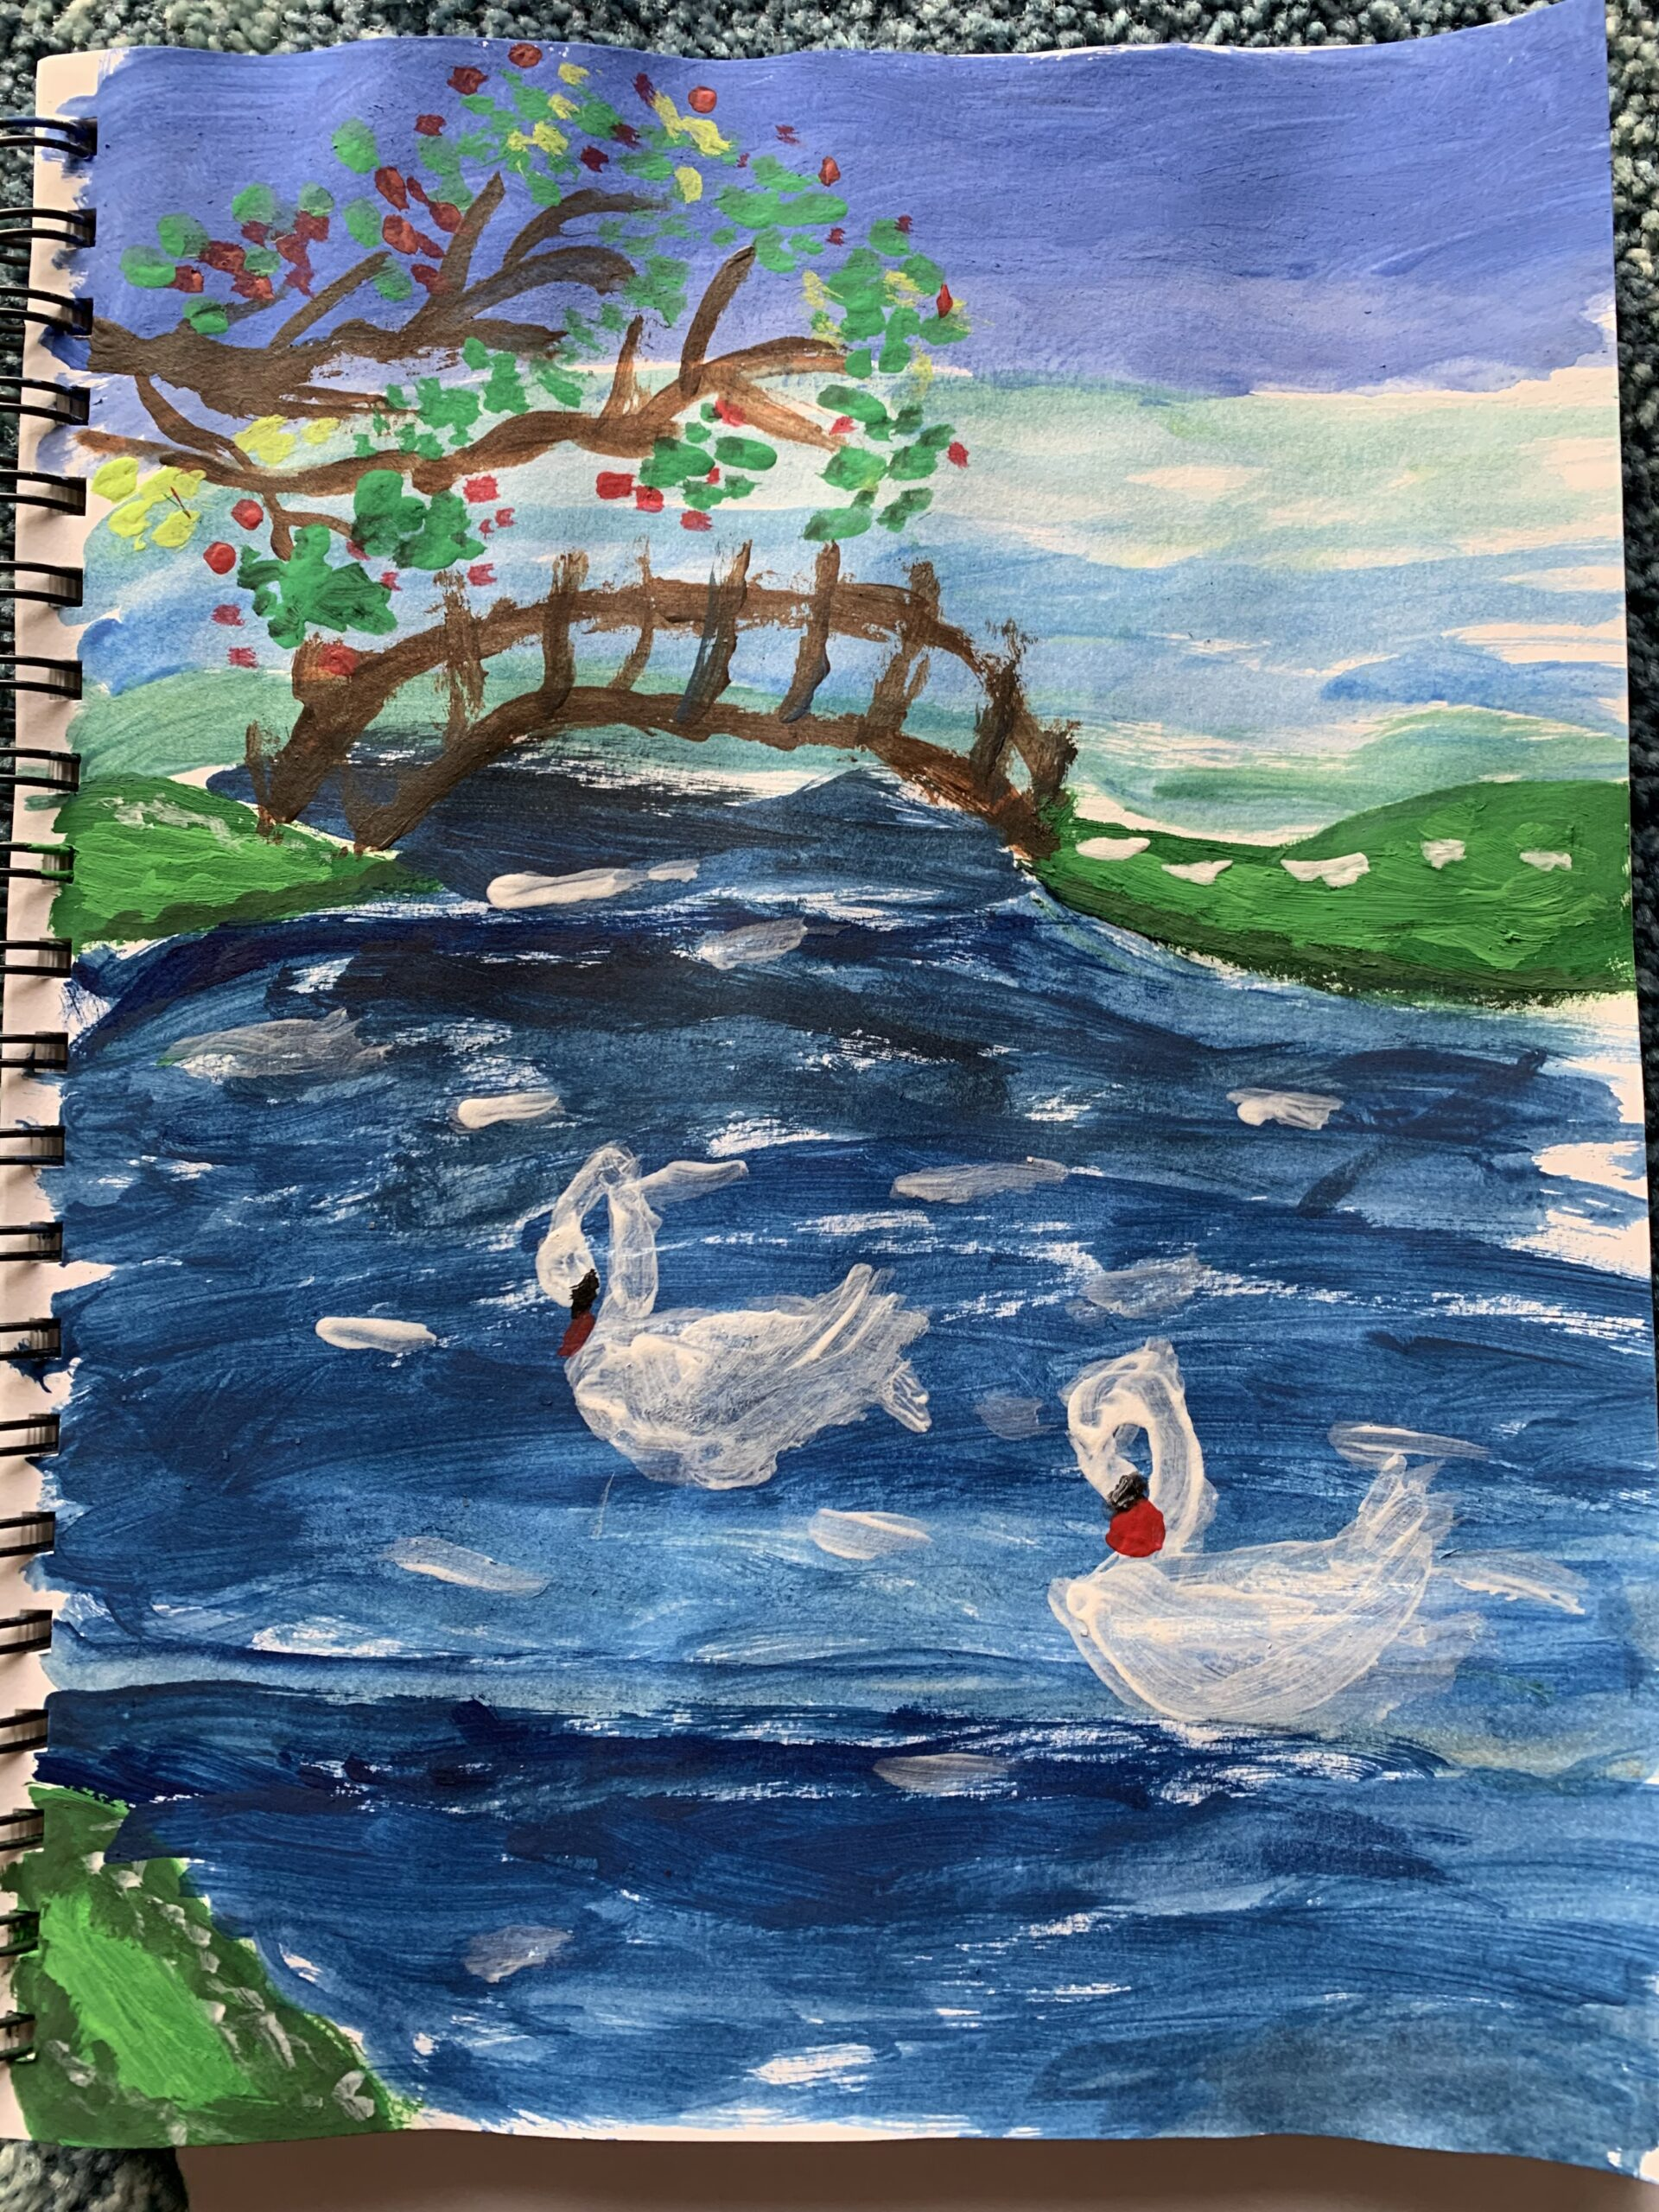 Swans in a Beautiful Lake by Kaitlyn Isabella Lewis